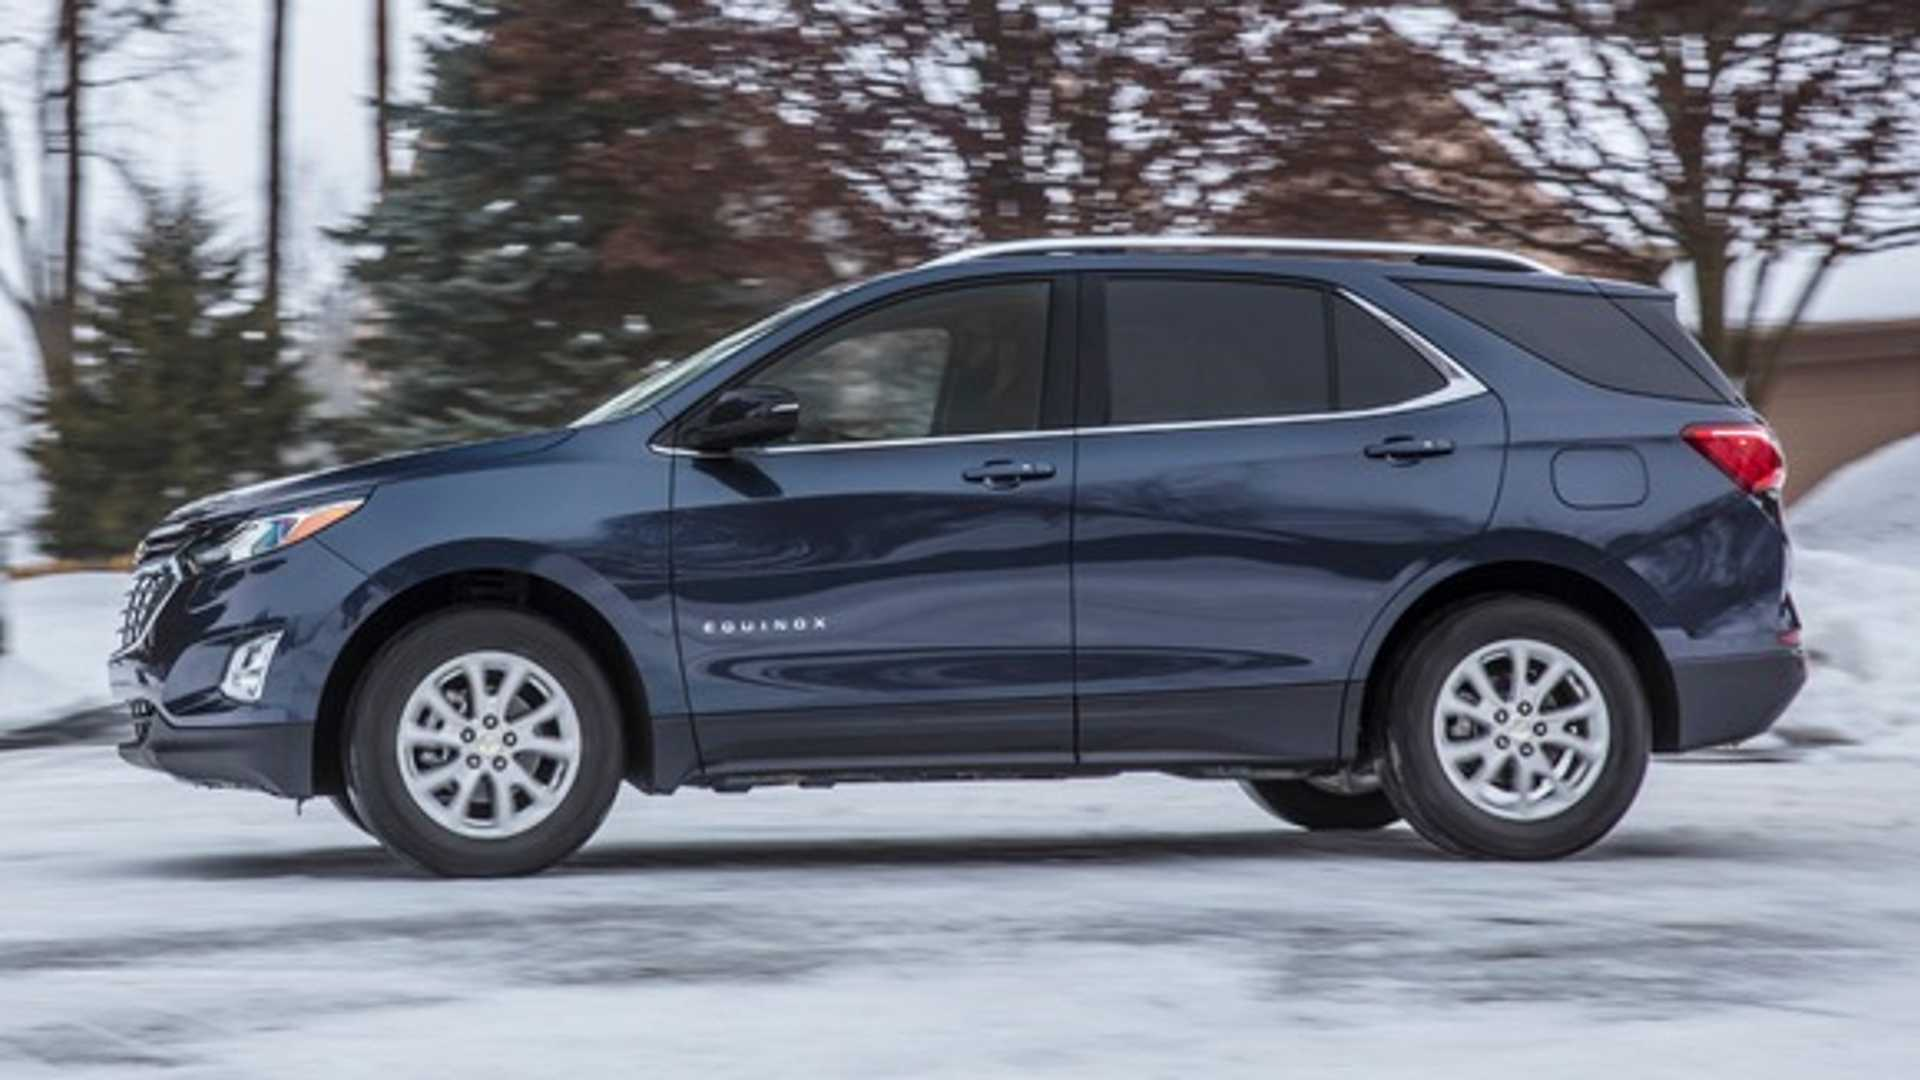 87 All New 2020 Chevy Equinox Ratings